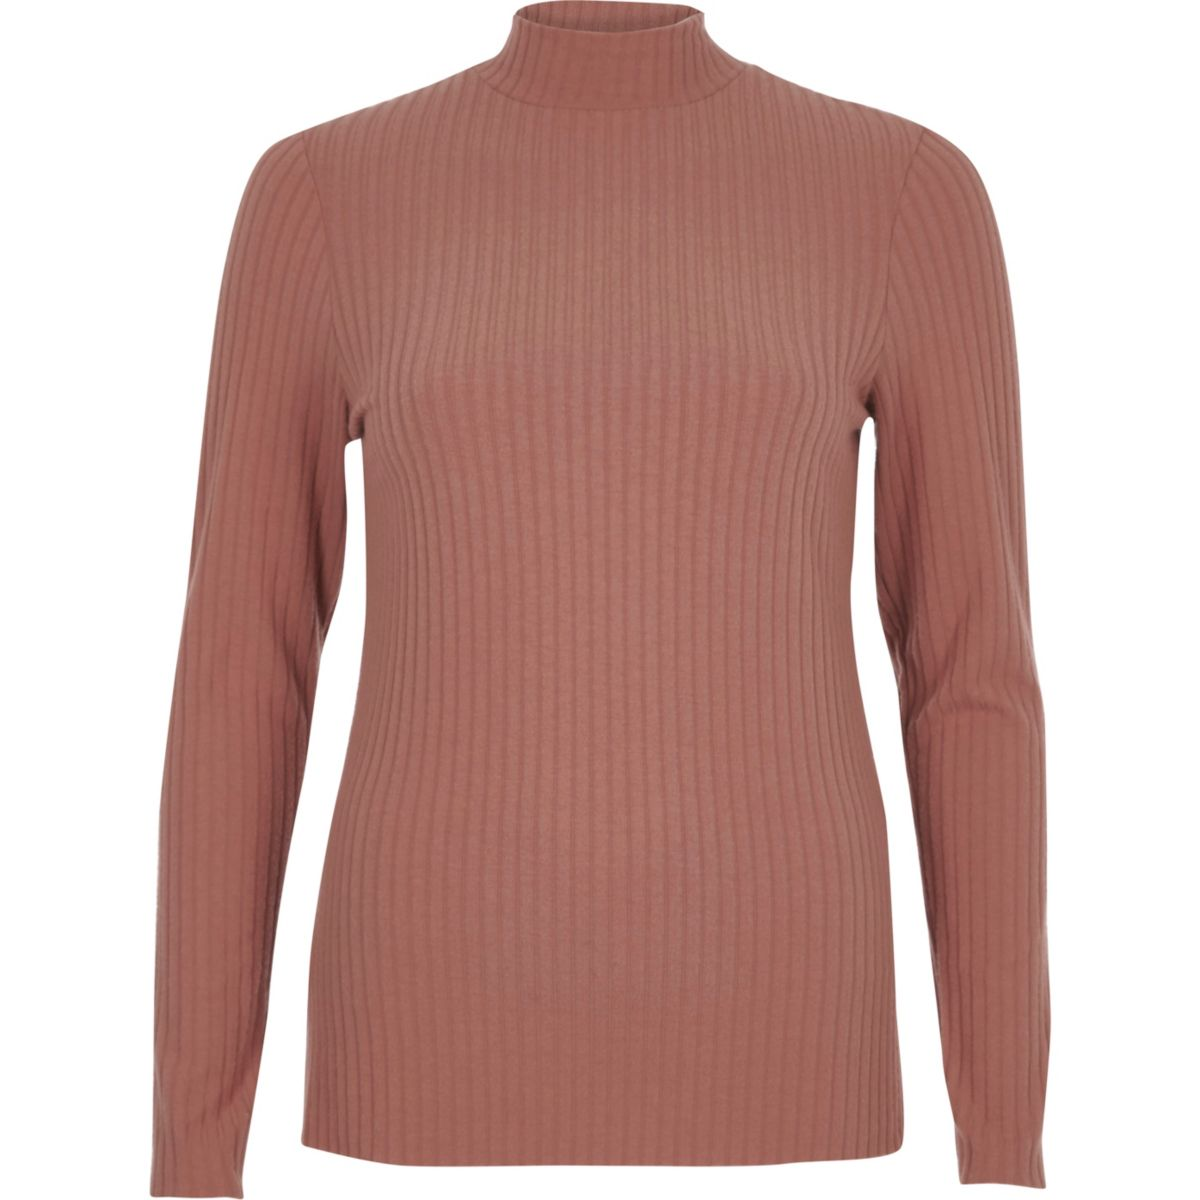 Beige brushed rib high neck fitted top